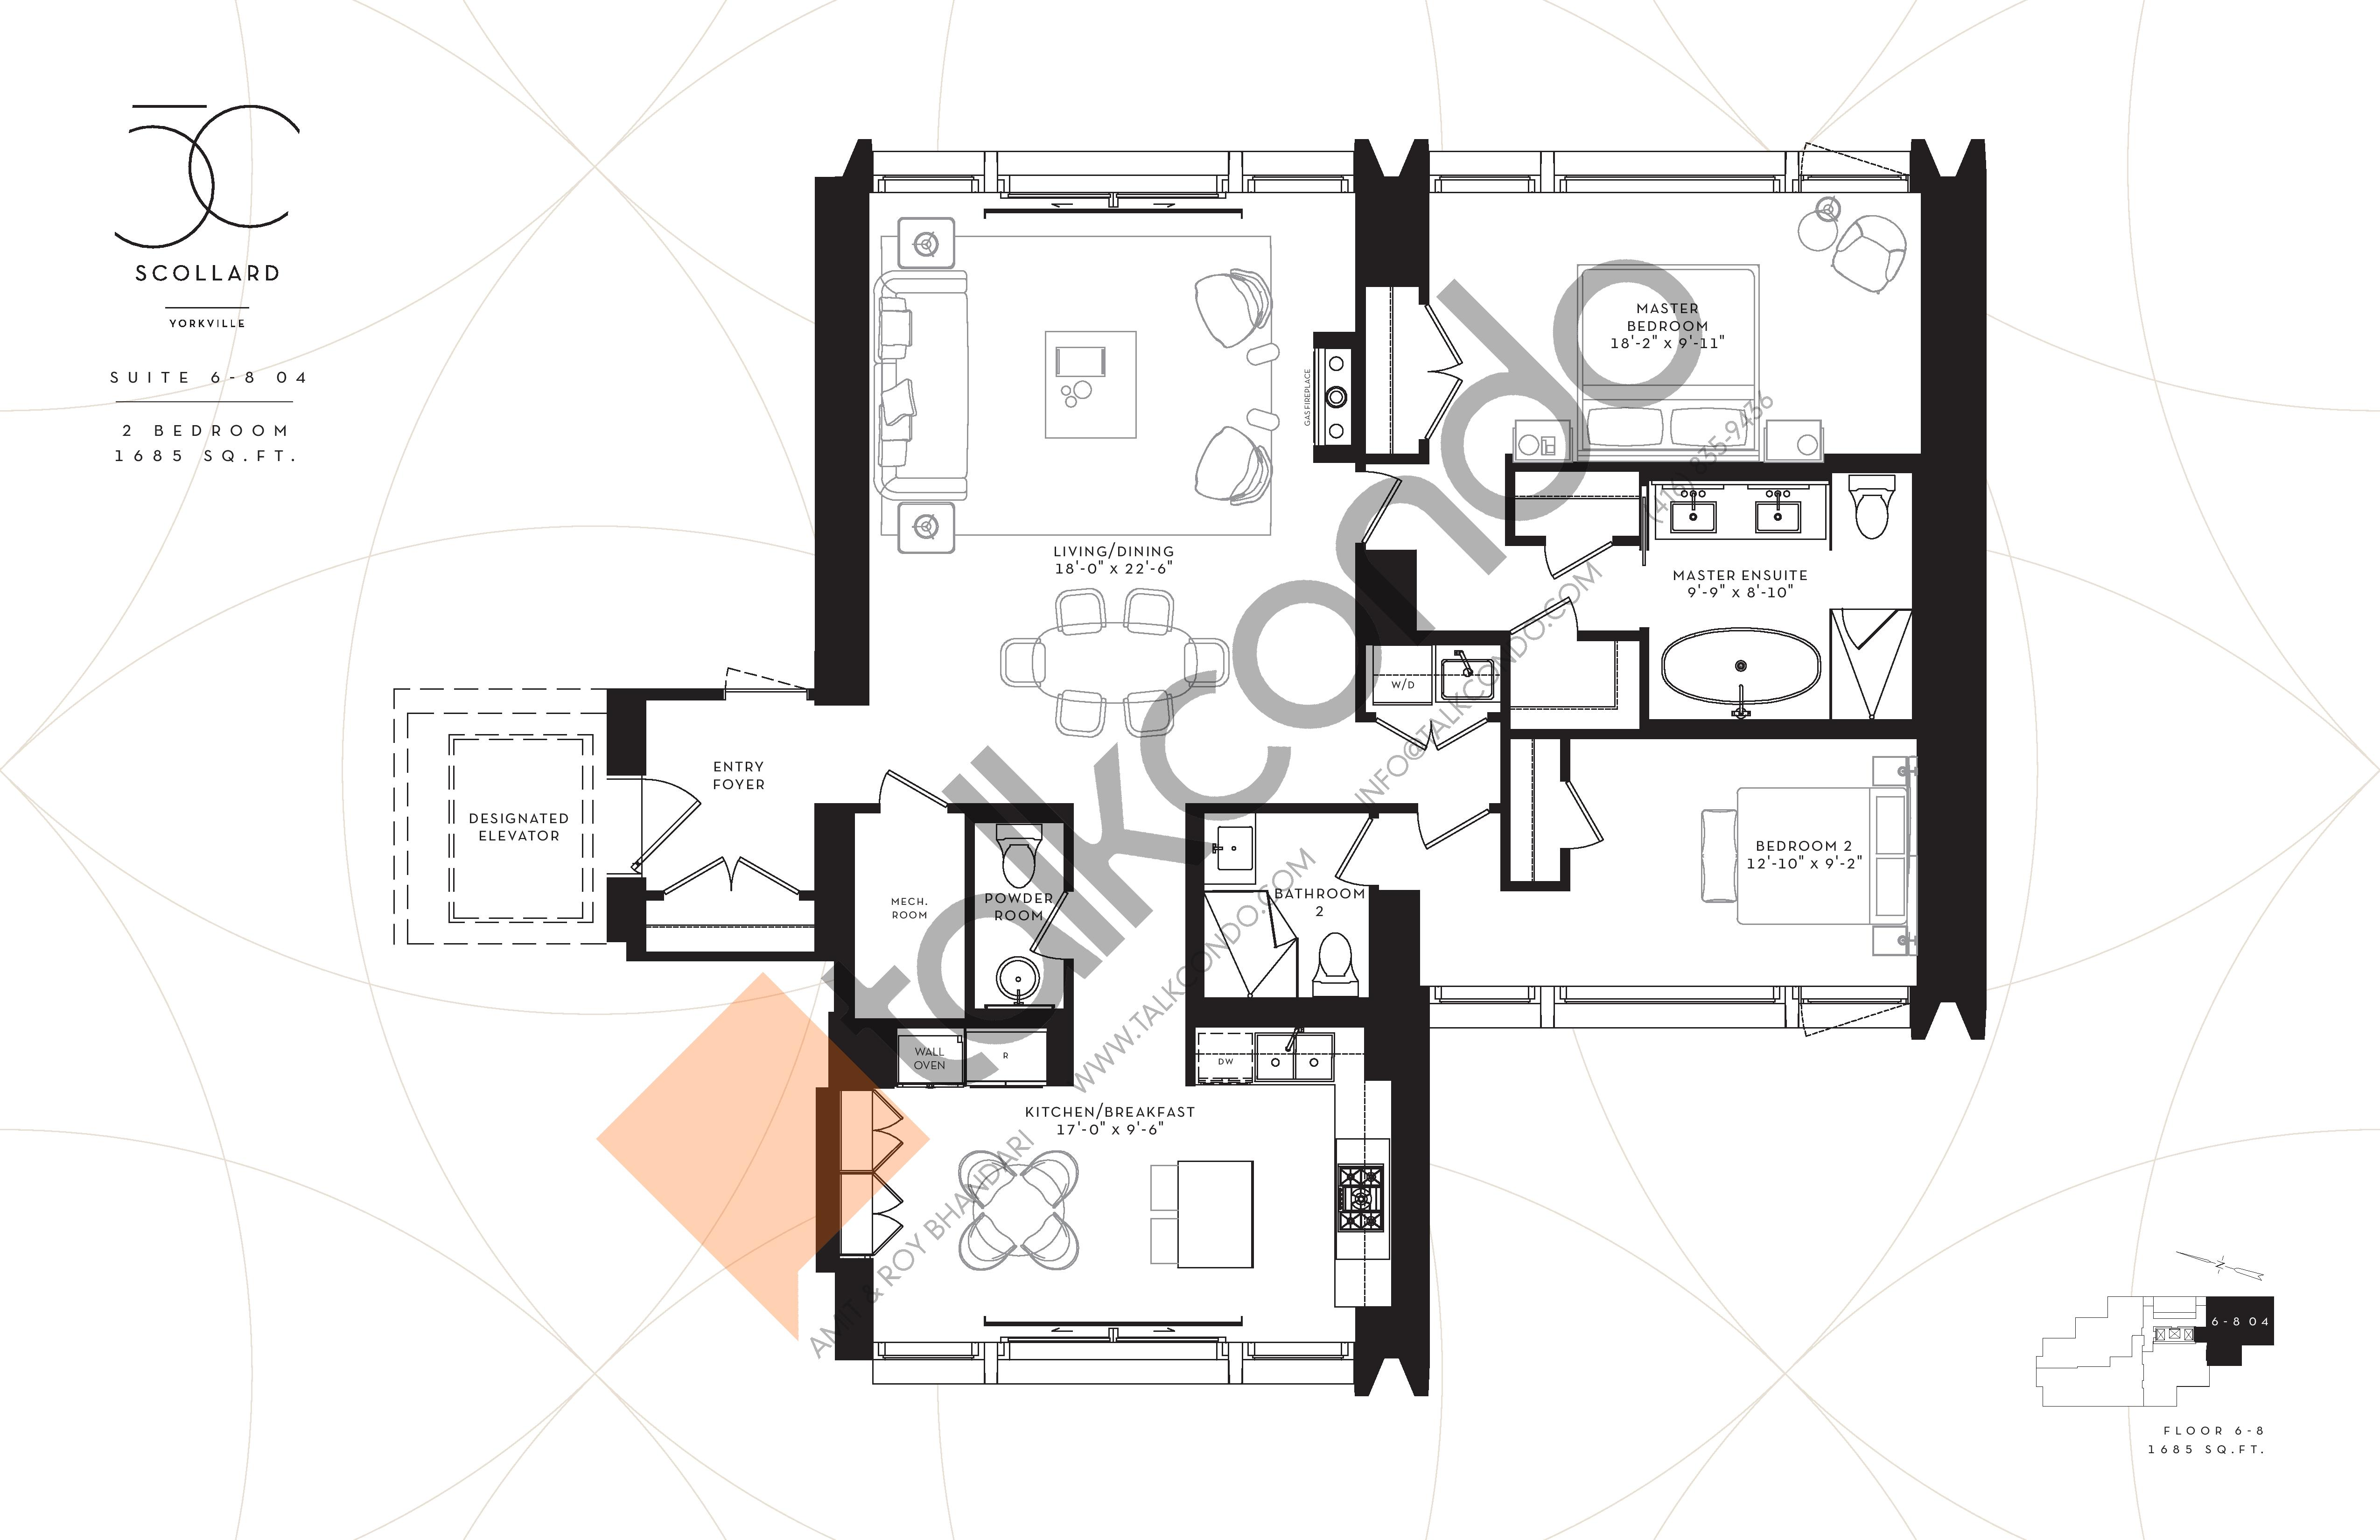 Suite 6-8 04 Floor Plan at Fifty Scollard Condos - 1685 sq.ft